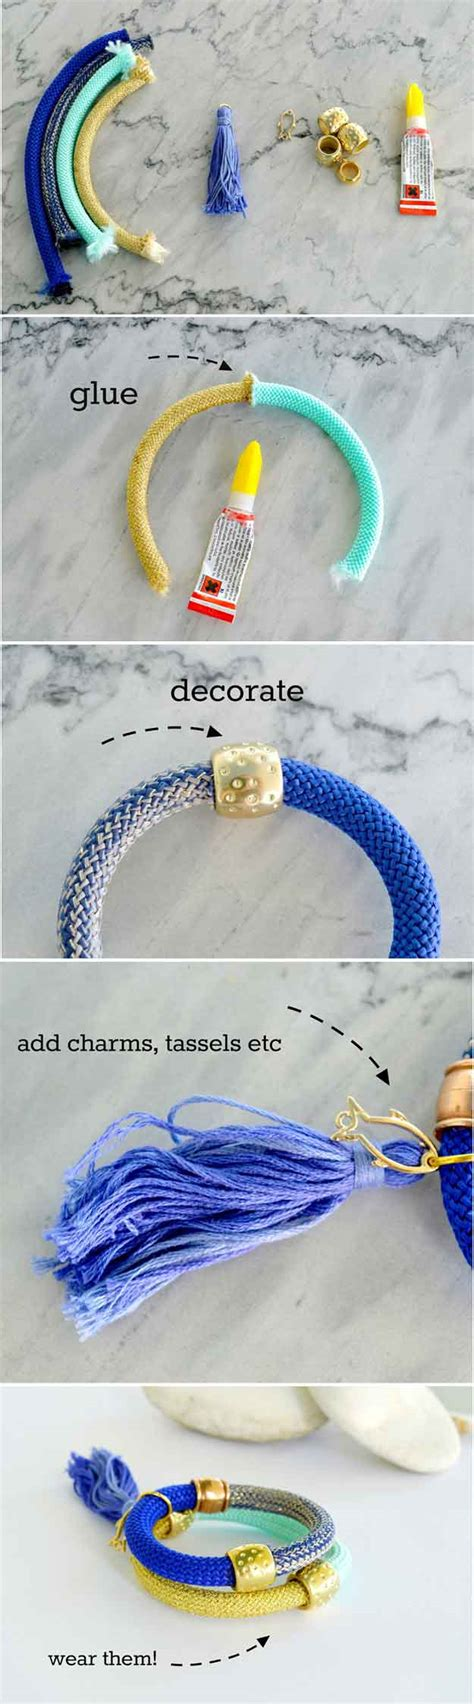 diy projects for cheap jewelry projects for diy projects craft ideas how to s for home decor with